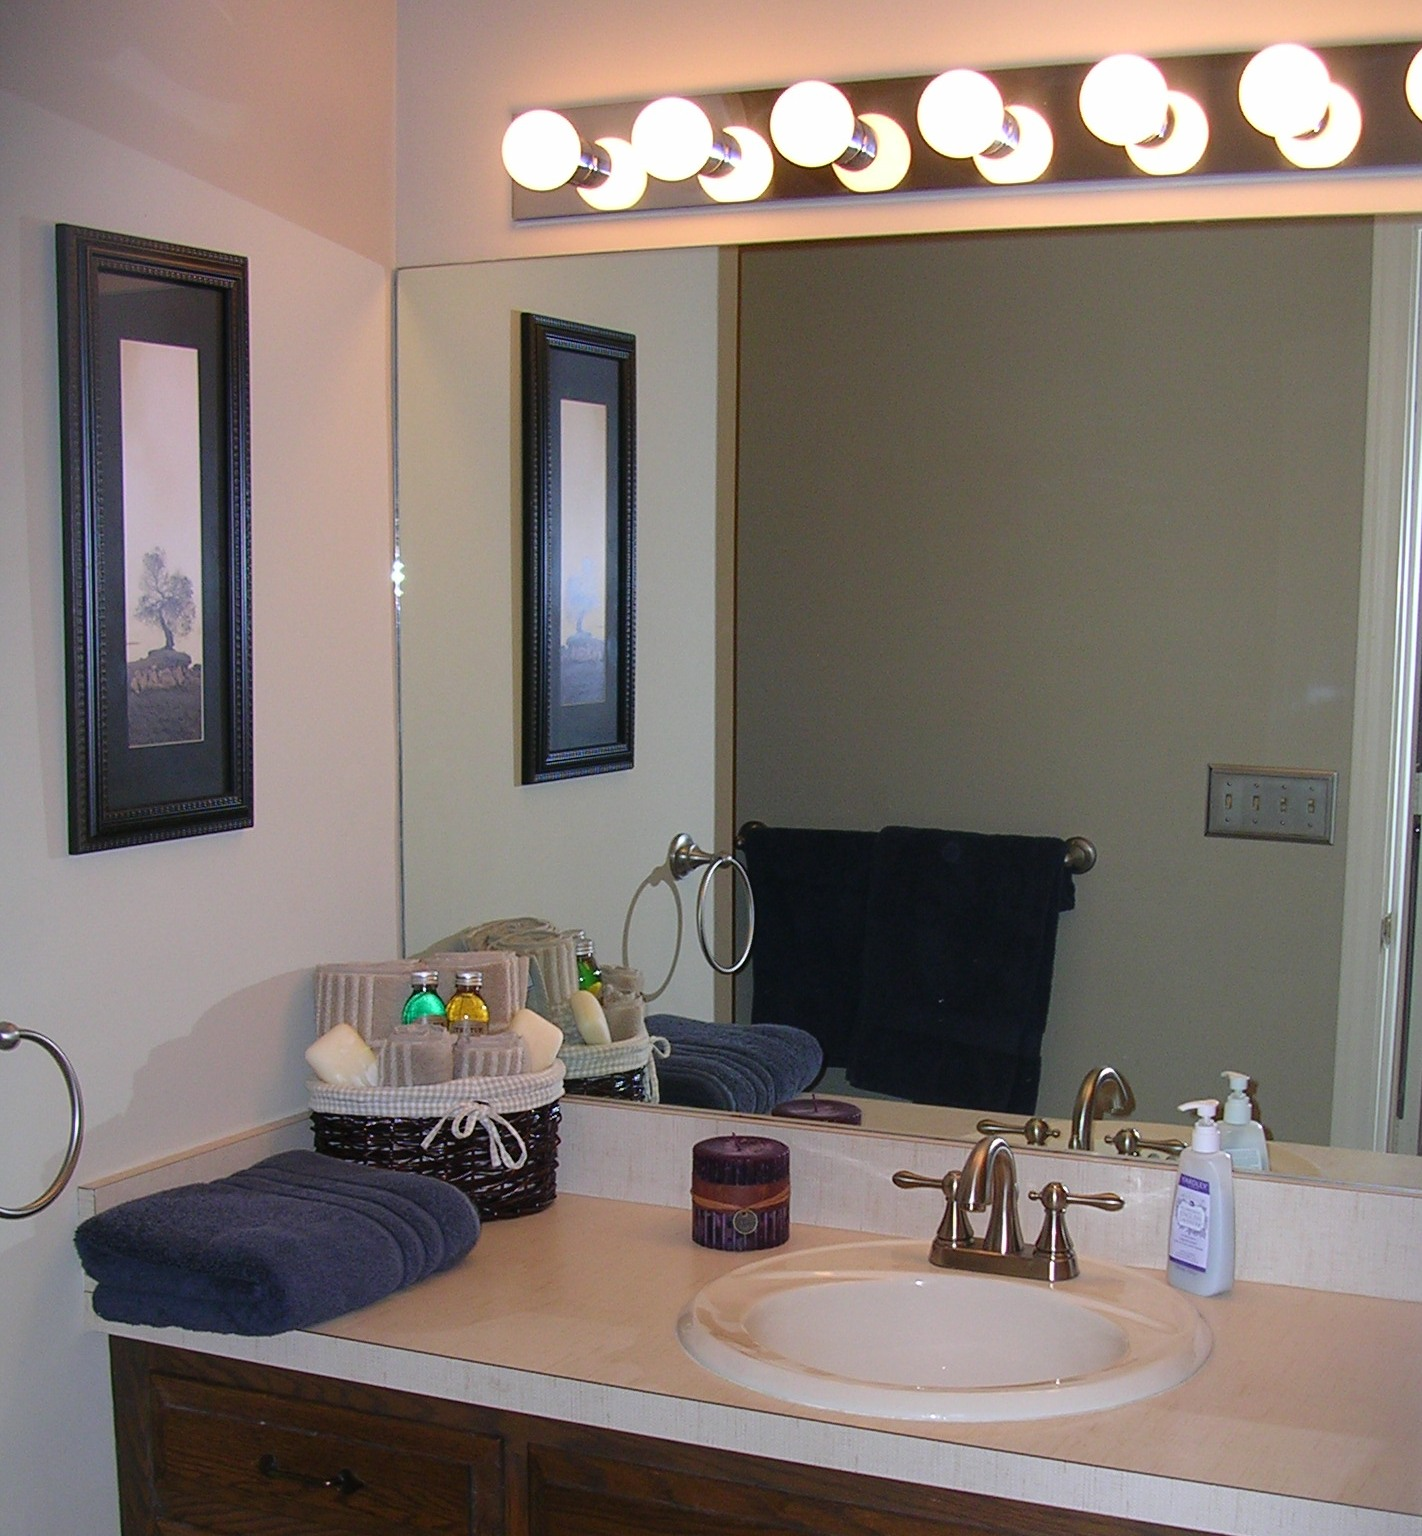 Home staging consultation long distance atwell staged home for Staging a bathroom ideas